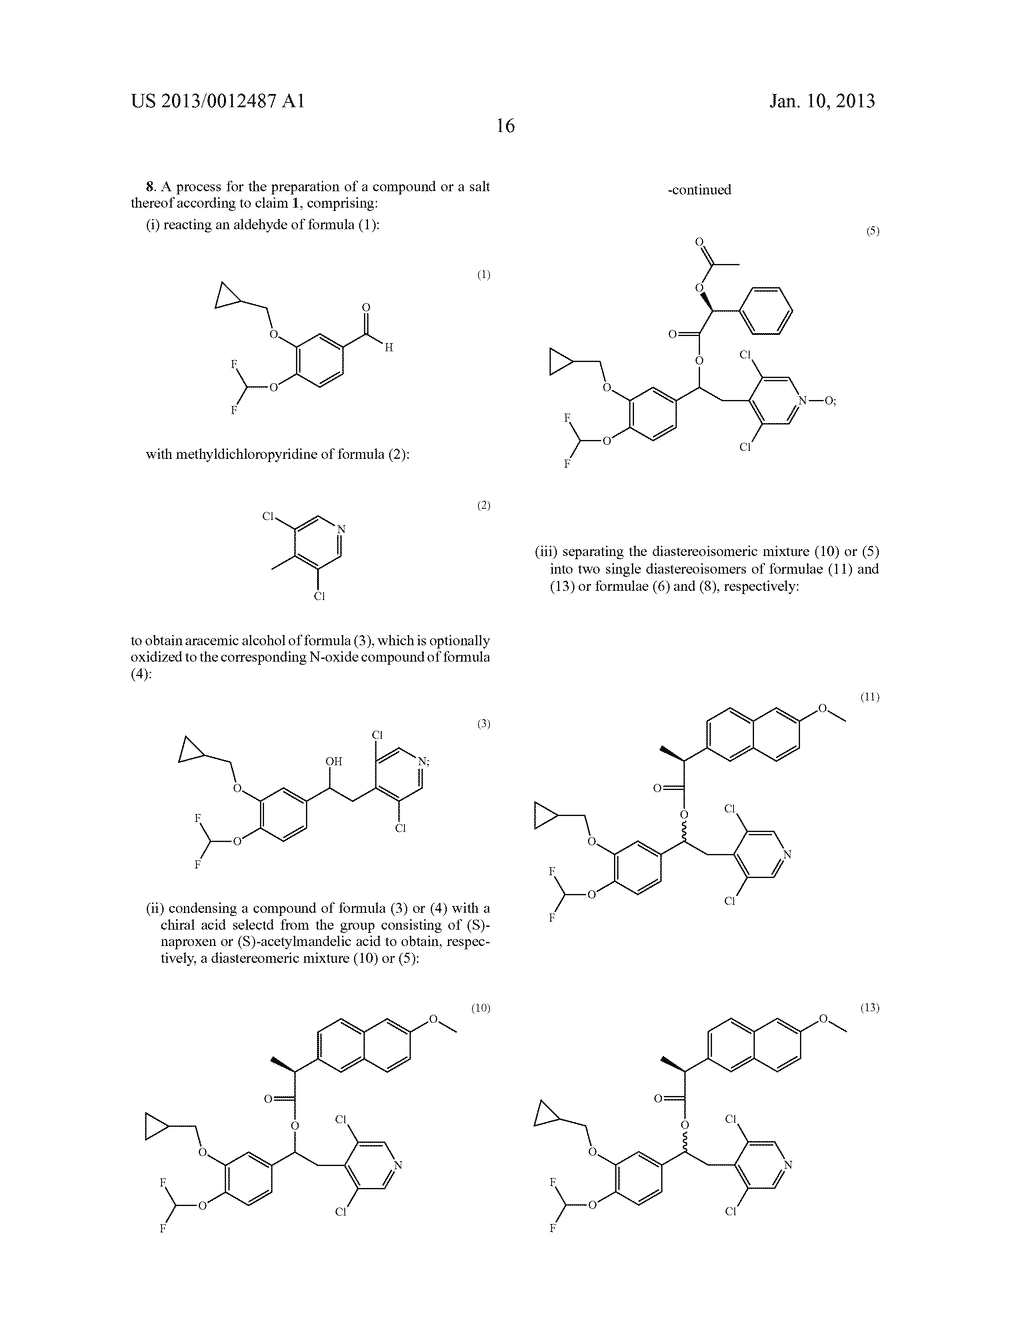 1-PHENYL-2-PYRIDINYL ALKYL ALCOHOL COMPOUNDS AS PHOSPHODIESTERASE     INHIBITORS - diagram, schematic, and image 18